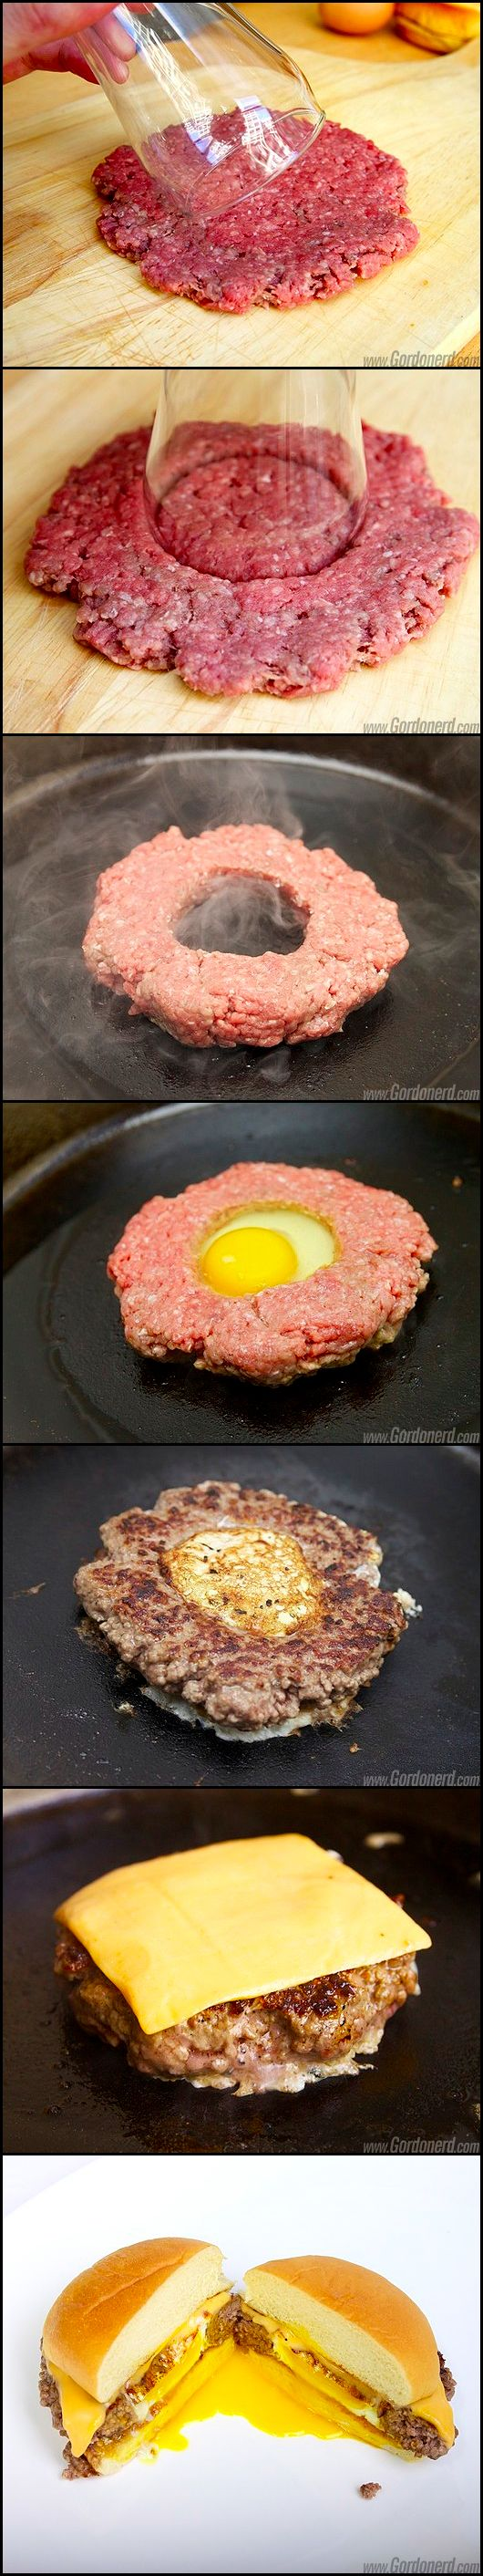 Egg in a Burger! UMM YUM!